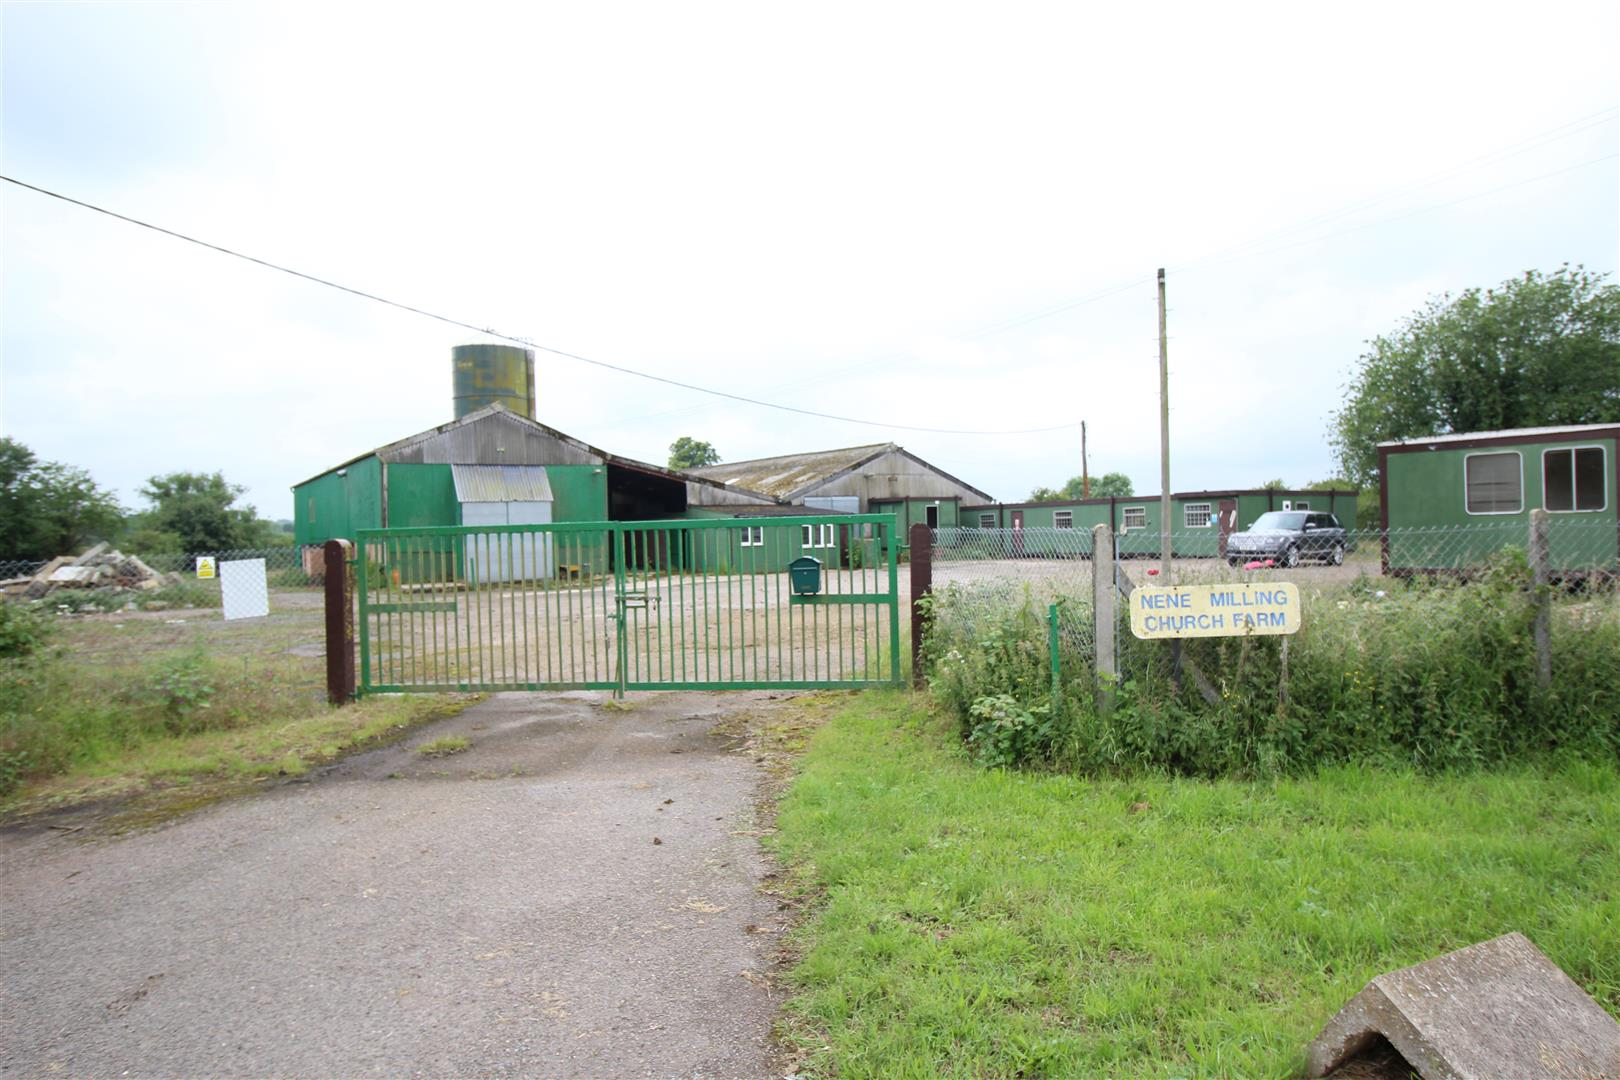 COMMERCIAL INFORMATION<br/><br/>Freehold Detached Light Industrial / Warehouse<br/>Use Class Orders E (g) (iii), (Formally) B1 (c) Light Commercial<br/>Site Area 4.64 Acres - 1.88 Ha<br/>Yard Buildings & Land<br/>Toilet Facilities<br/>Office Areas<br/>16